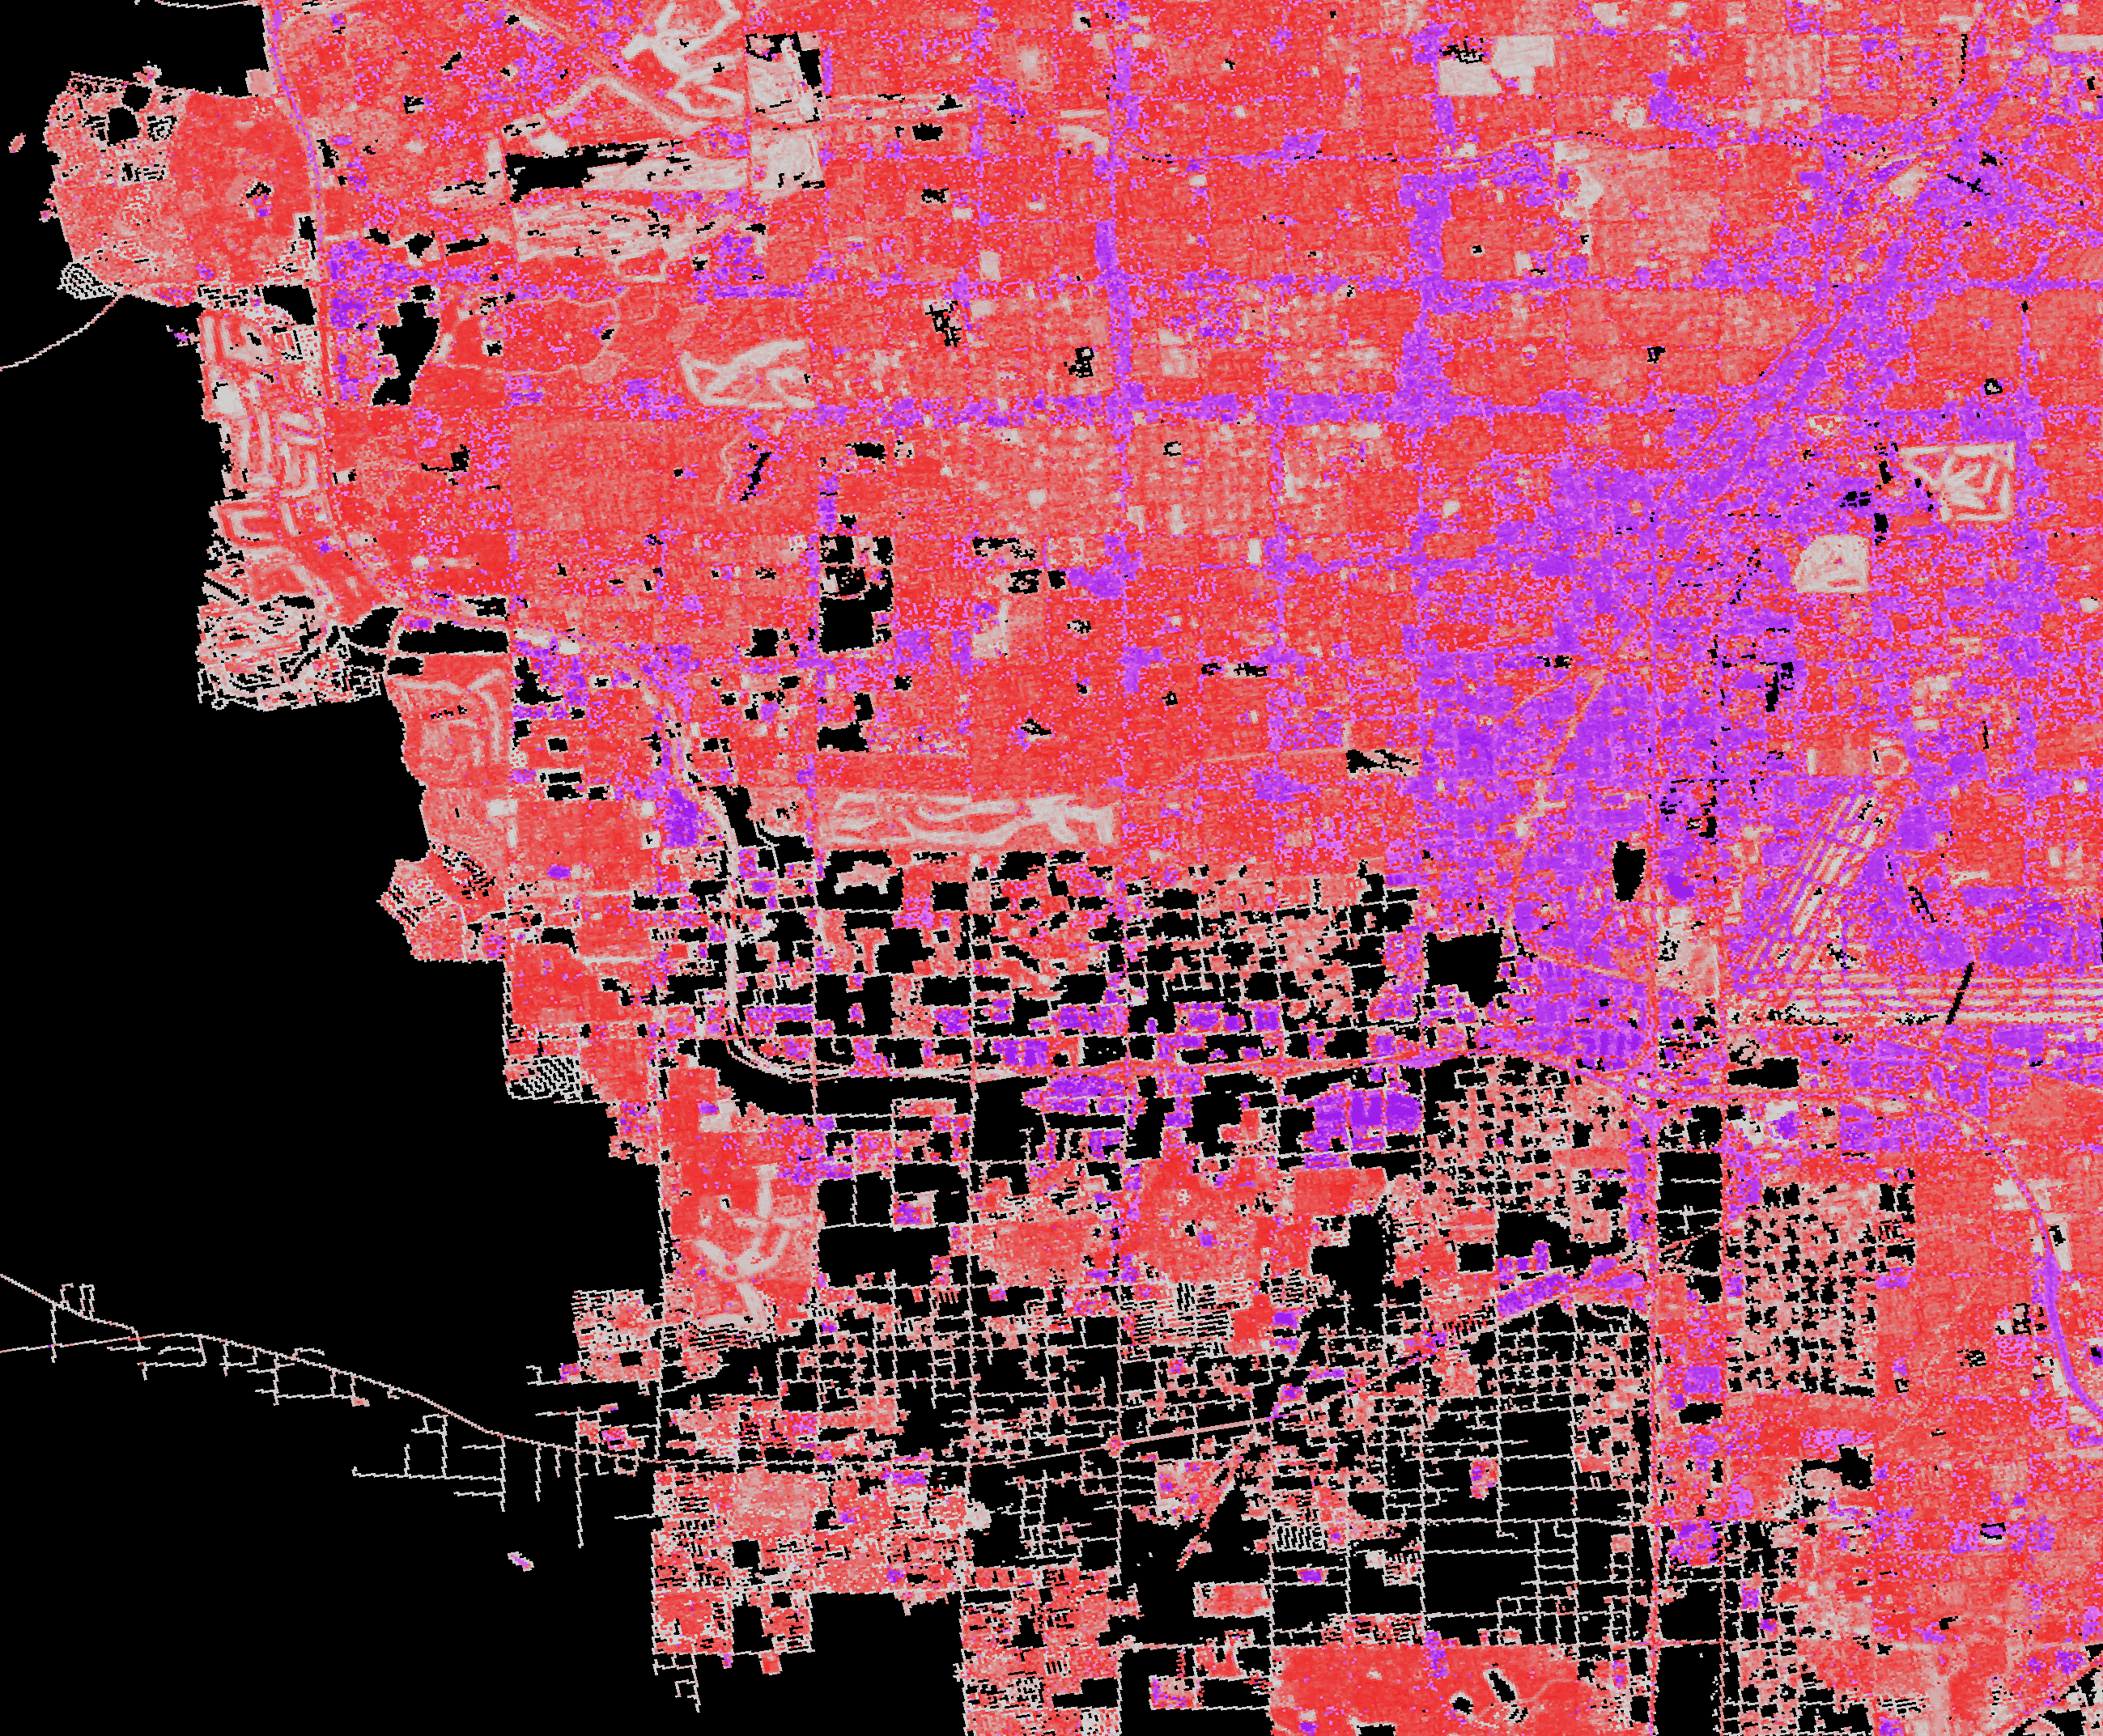 National Land Cover Database (NLCD) 2016, Impervious Surface, Las Vegas, Nevada,